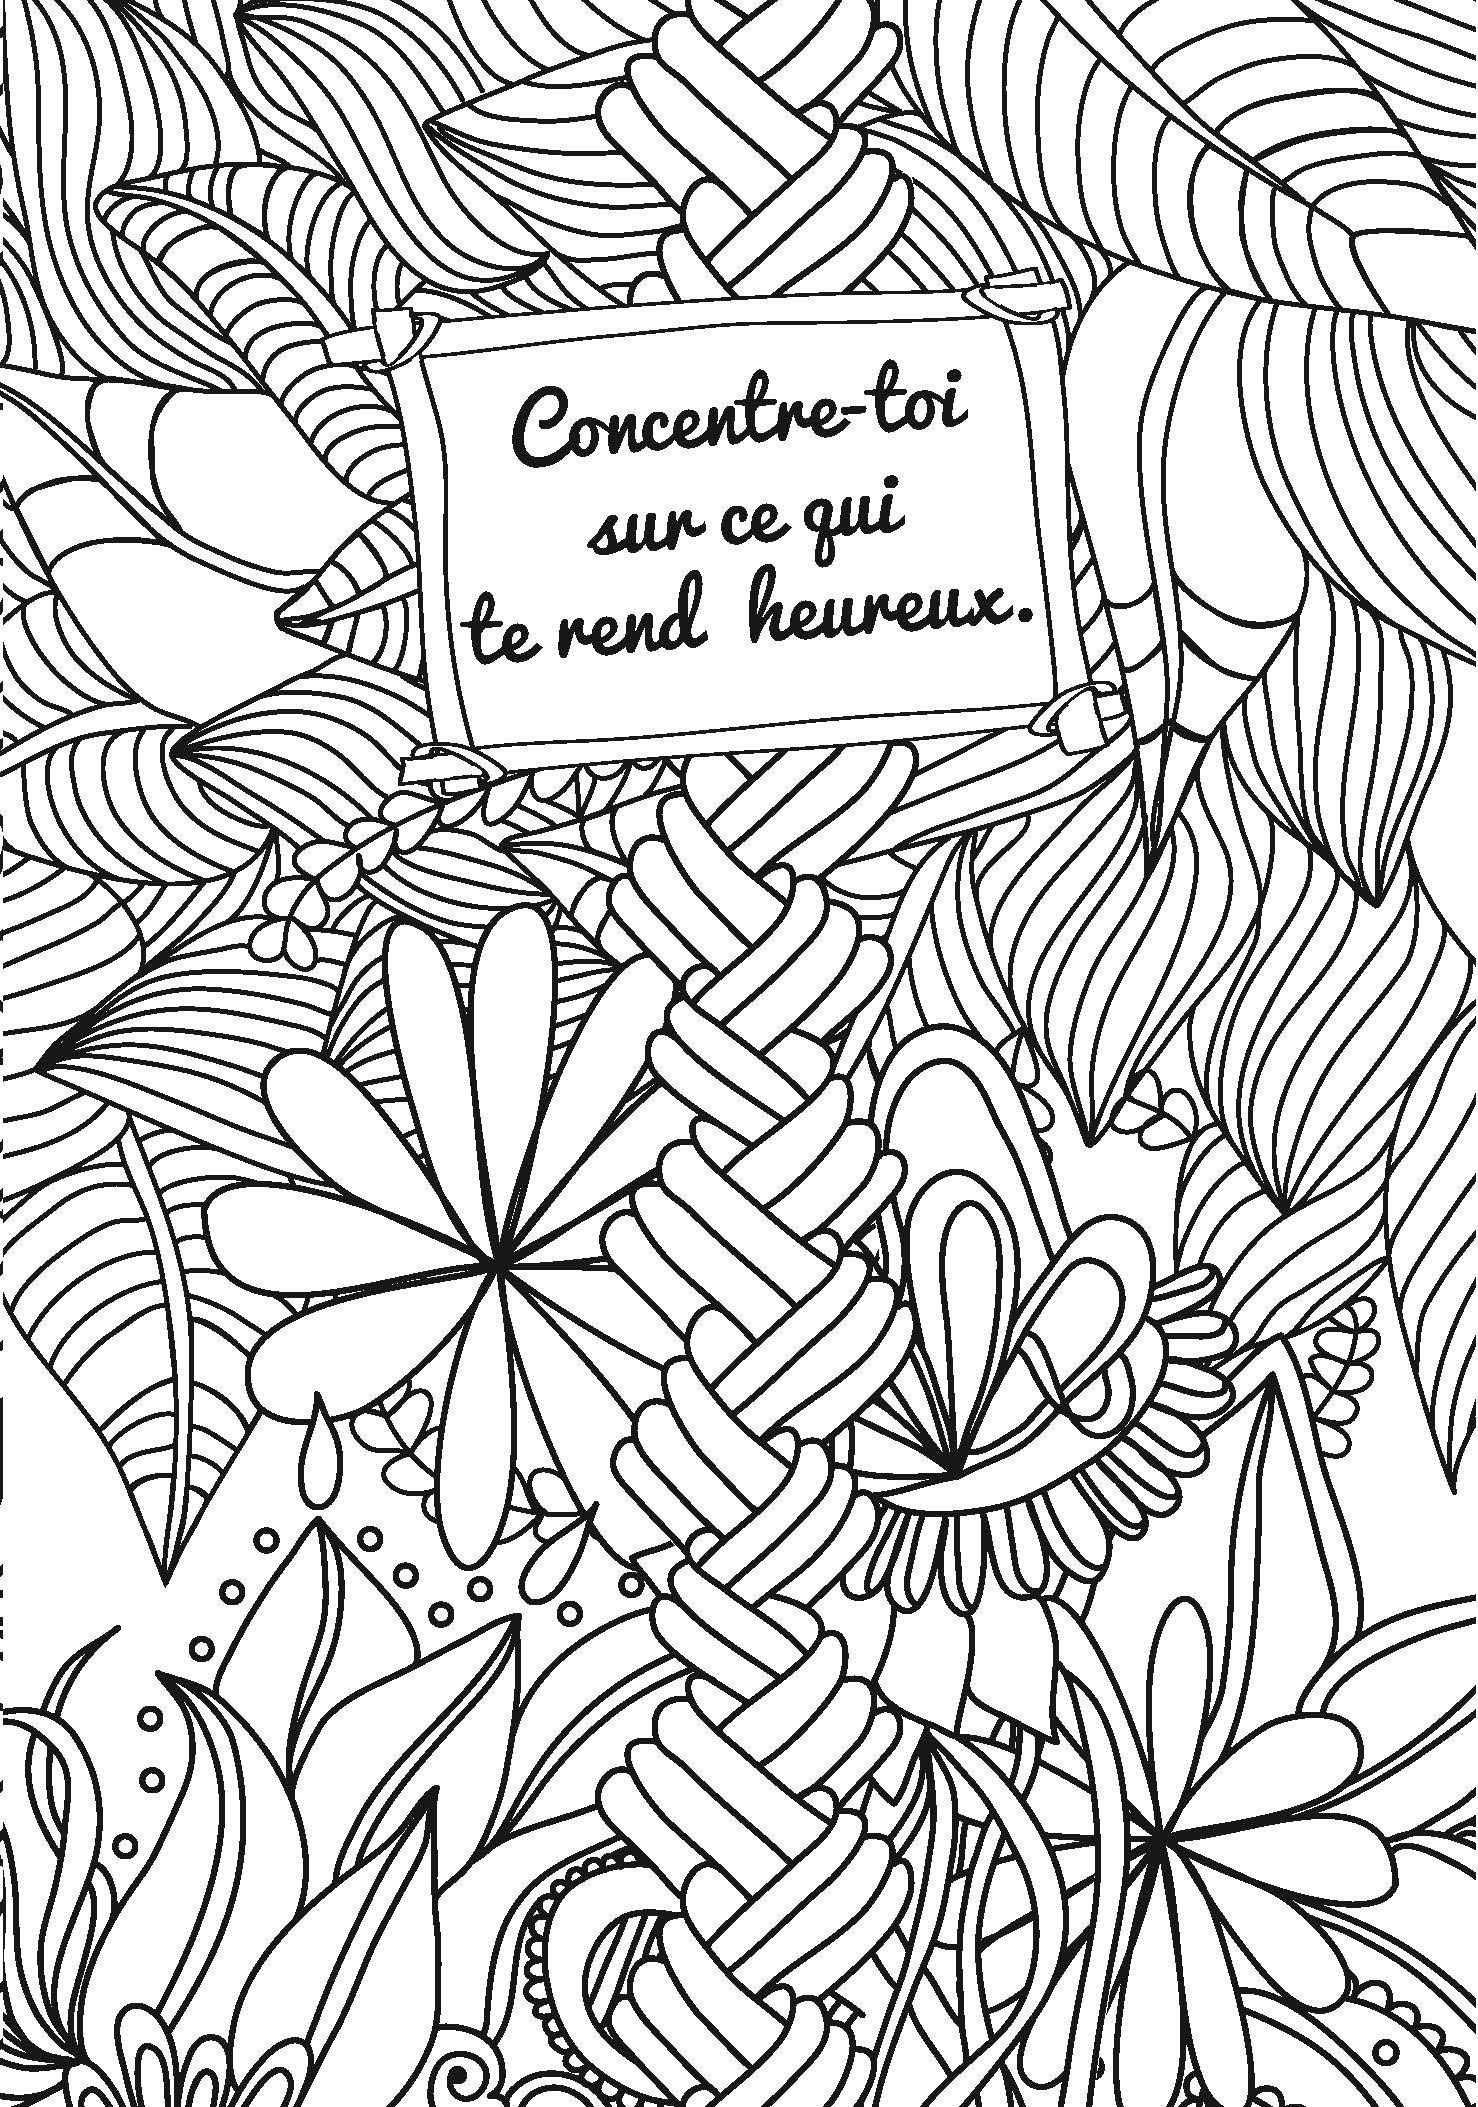 Pingl par nicky valiquette sur mandalas art th rapie coloriages doodles fractals - Coloriage therapie ...